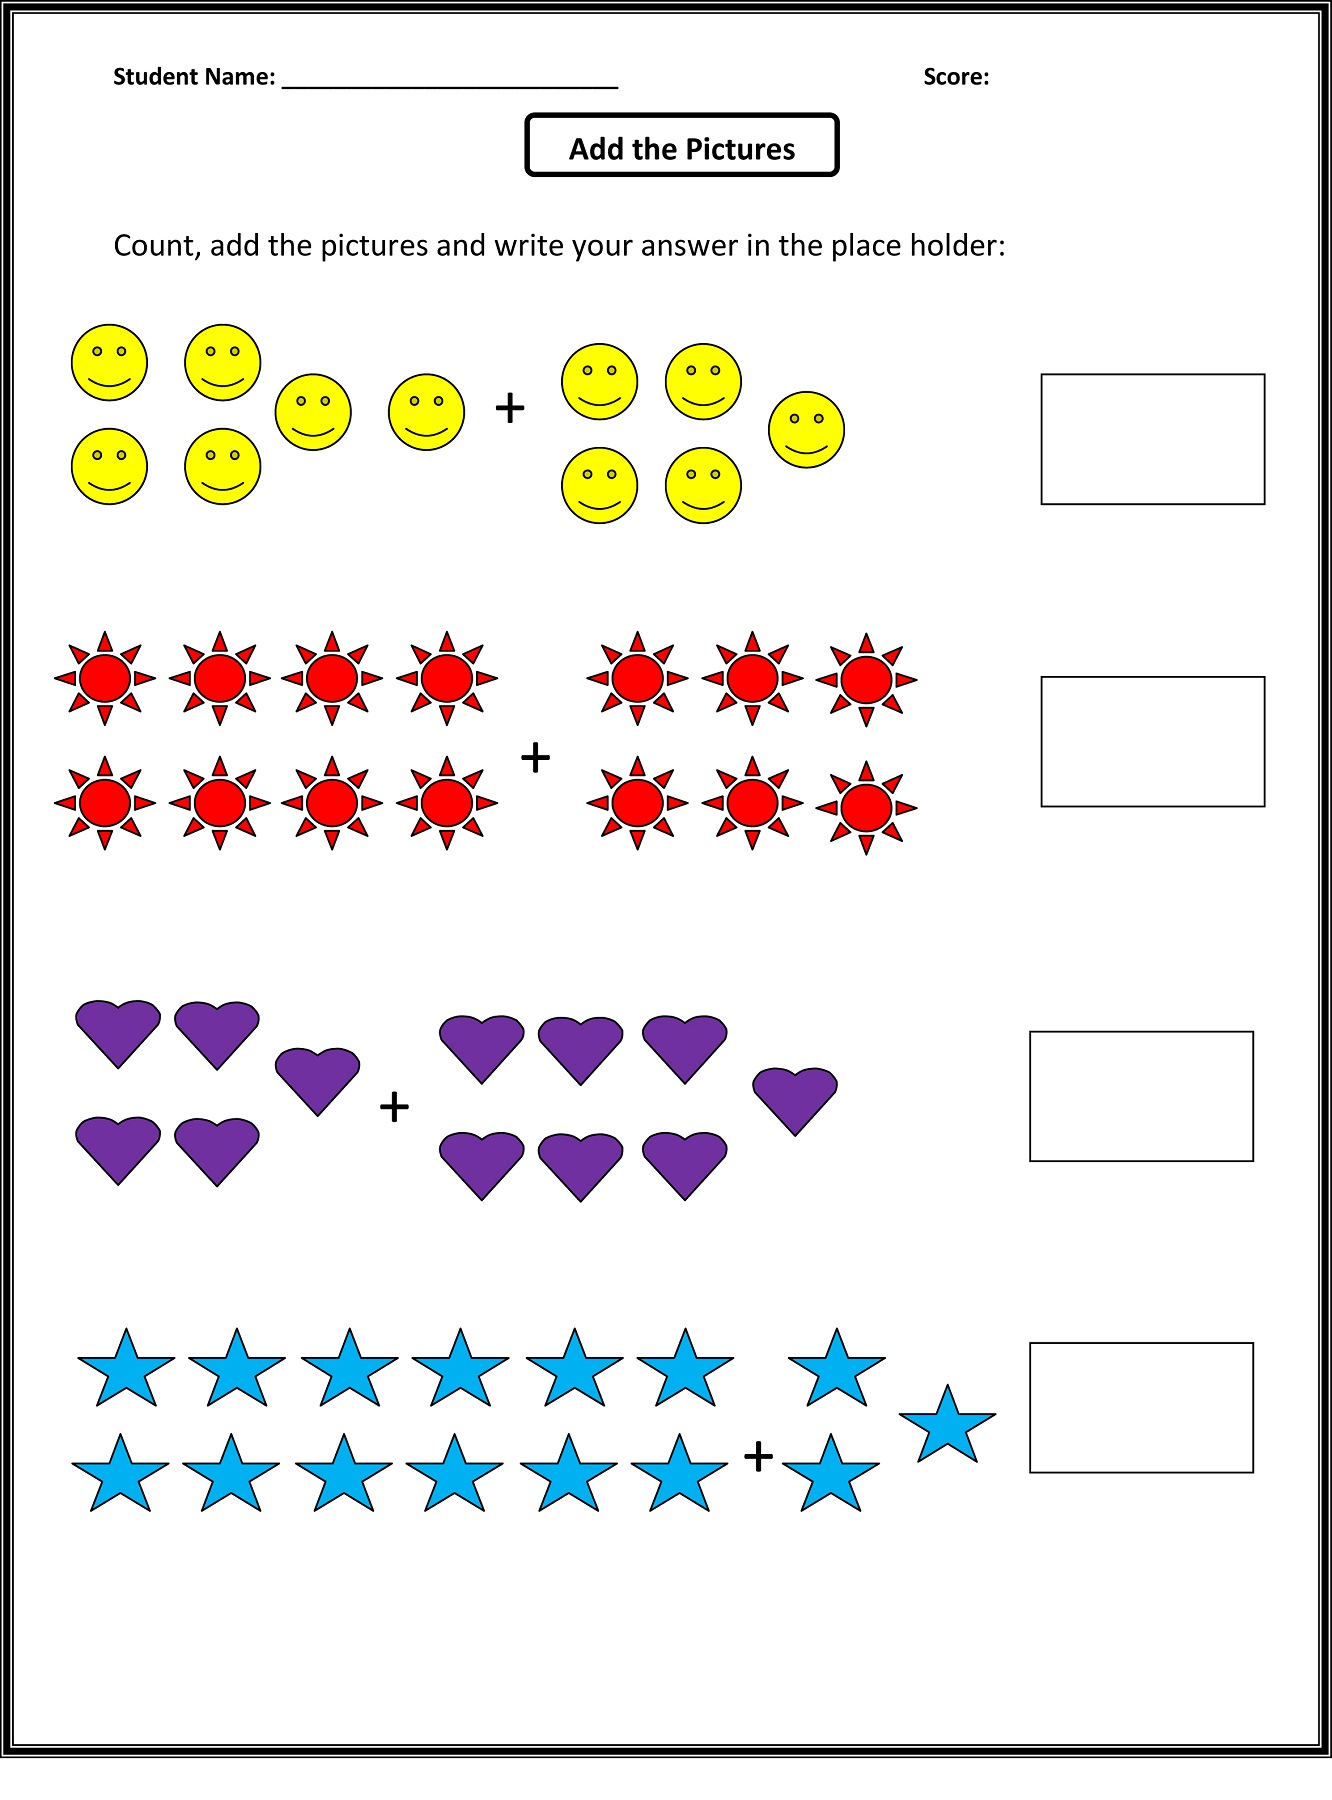 Worksheet Grade 1 School Worksheets math sheets for grade 1 to print activity shelter kids